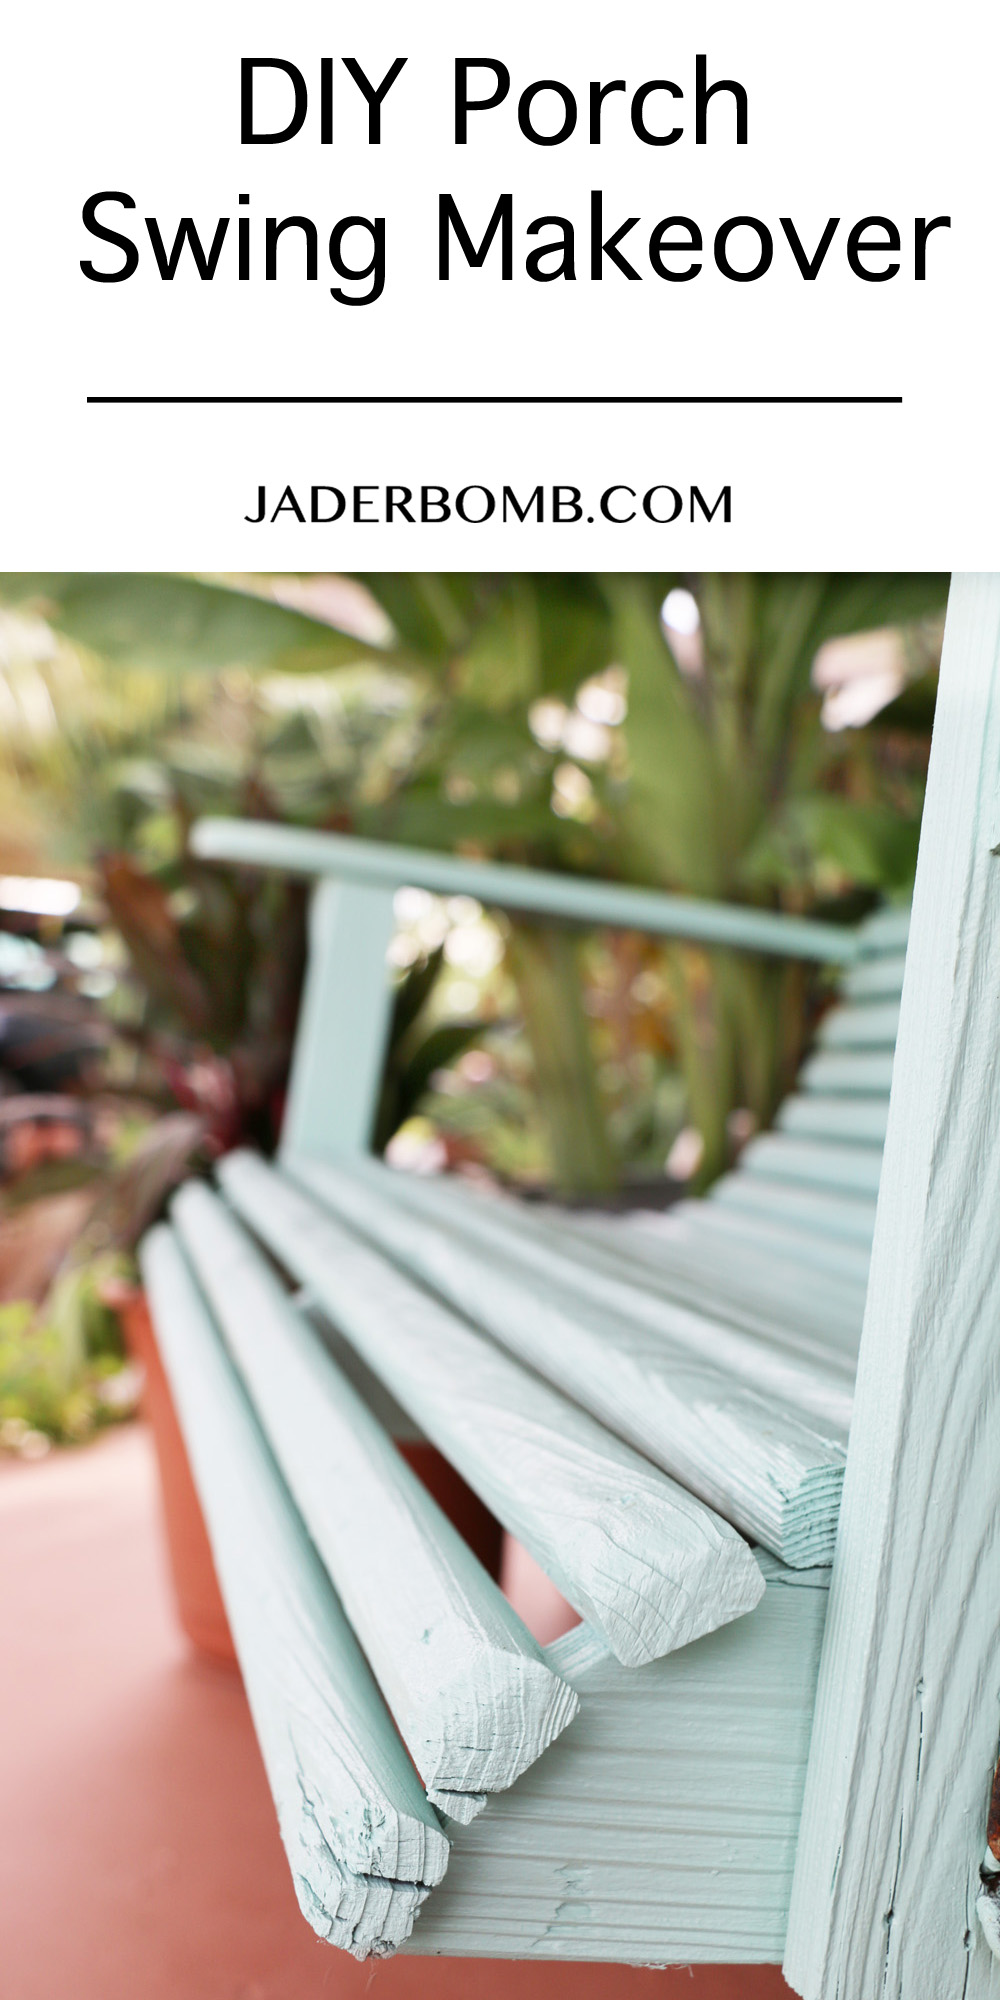 DIY Porch Swing Makeover